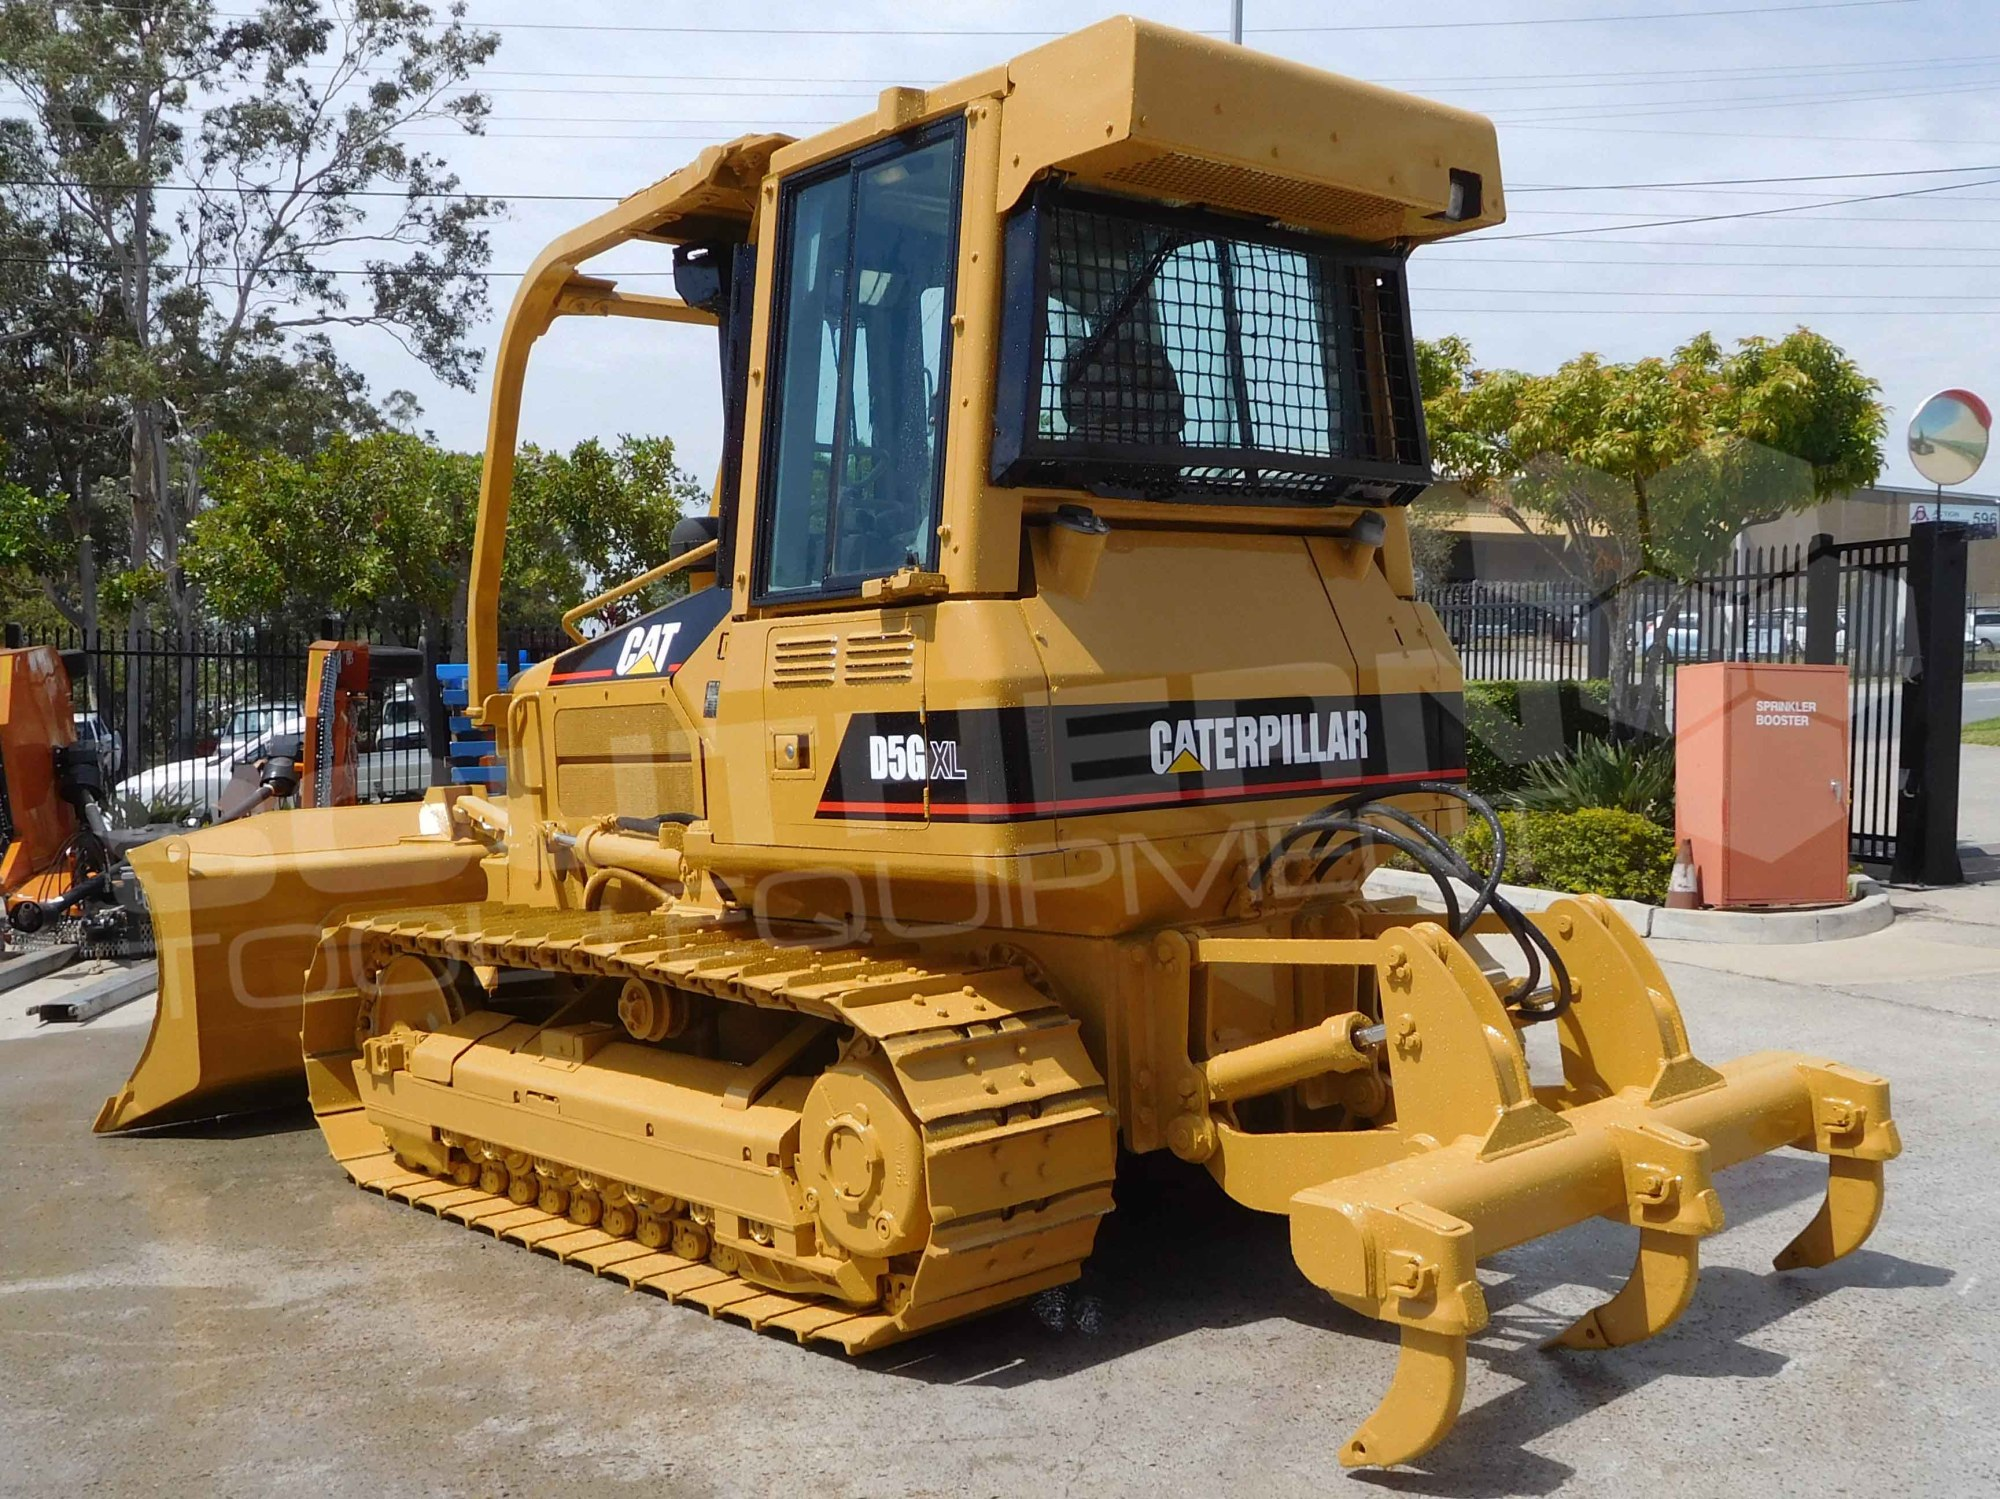 hight resolution of heavy duty caterpillar d5g two barrel bulldozer rippers southern tool equipment co new used earthmoving machinery and equipment for sale